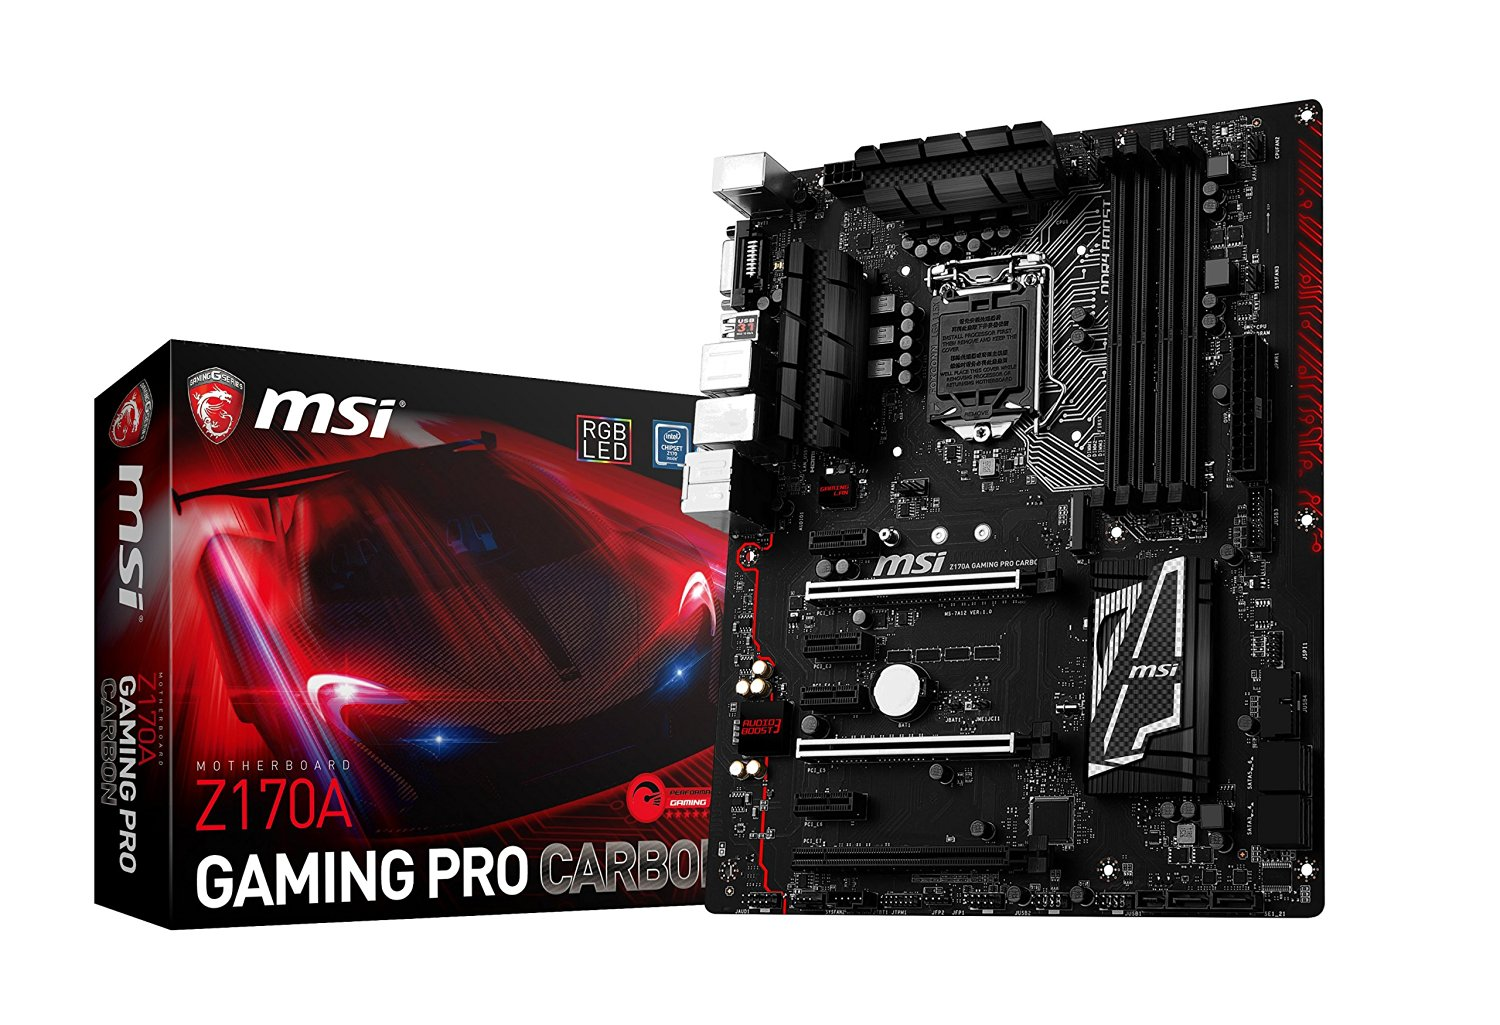 Msi Z170a Gaming Pro Carbon Motherboard Review Mining